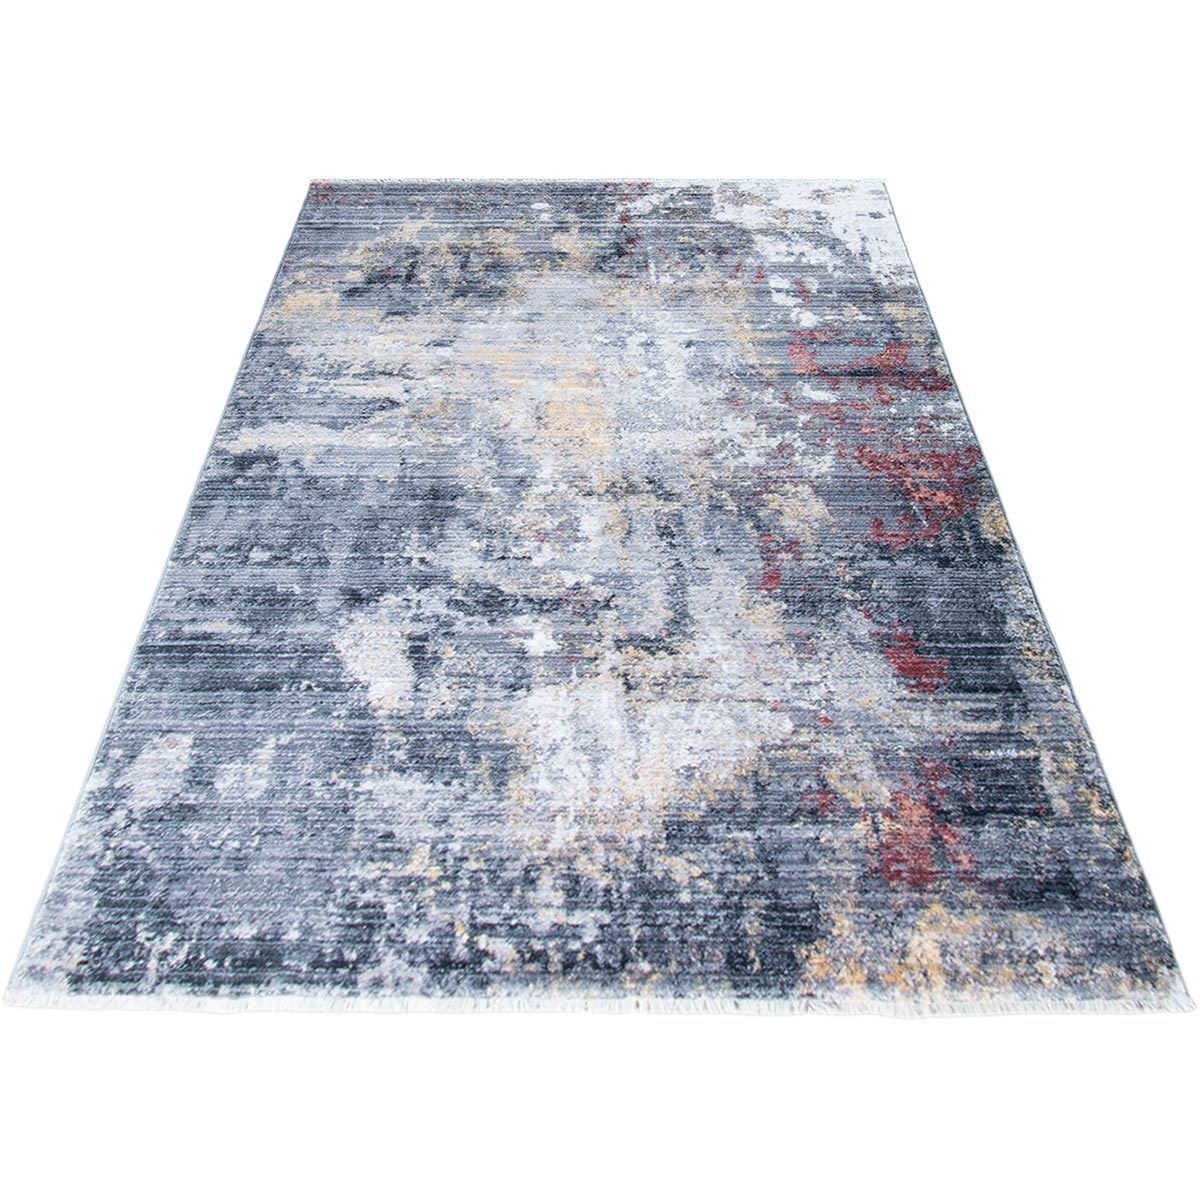 Istanbul Rug 02 Grey/Yellow/Orange 6